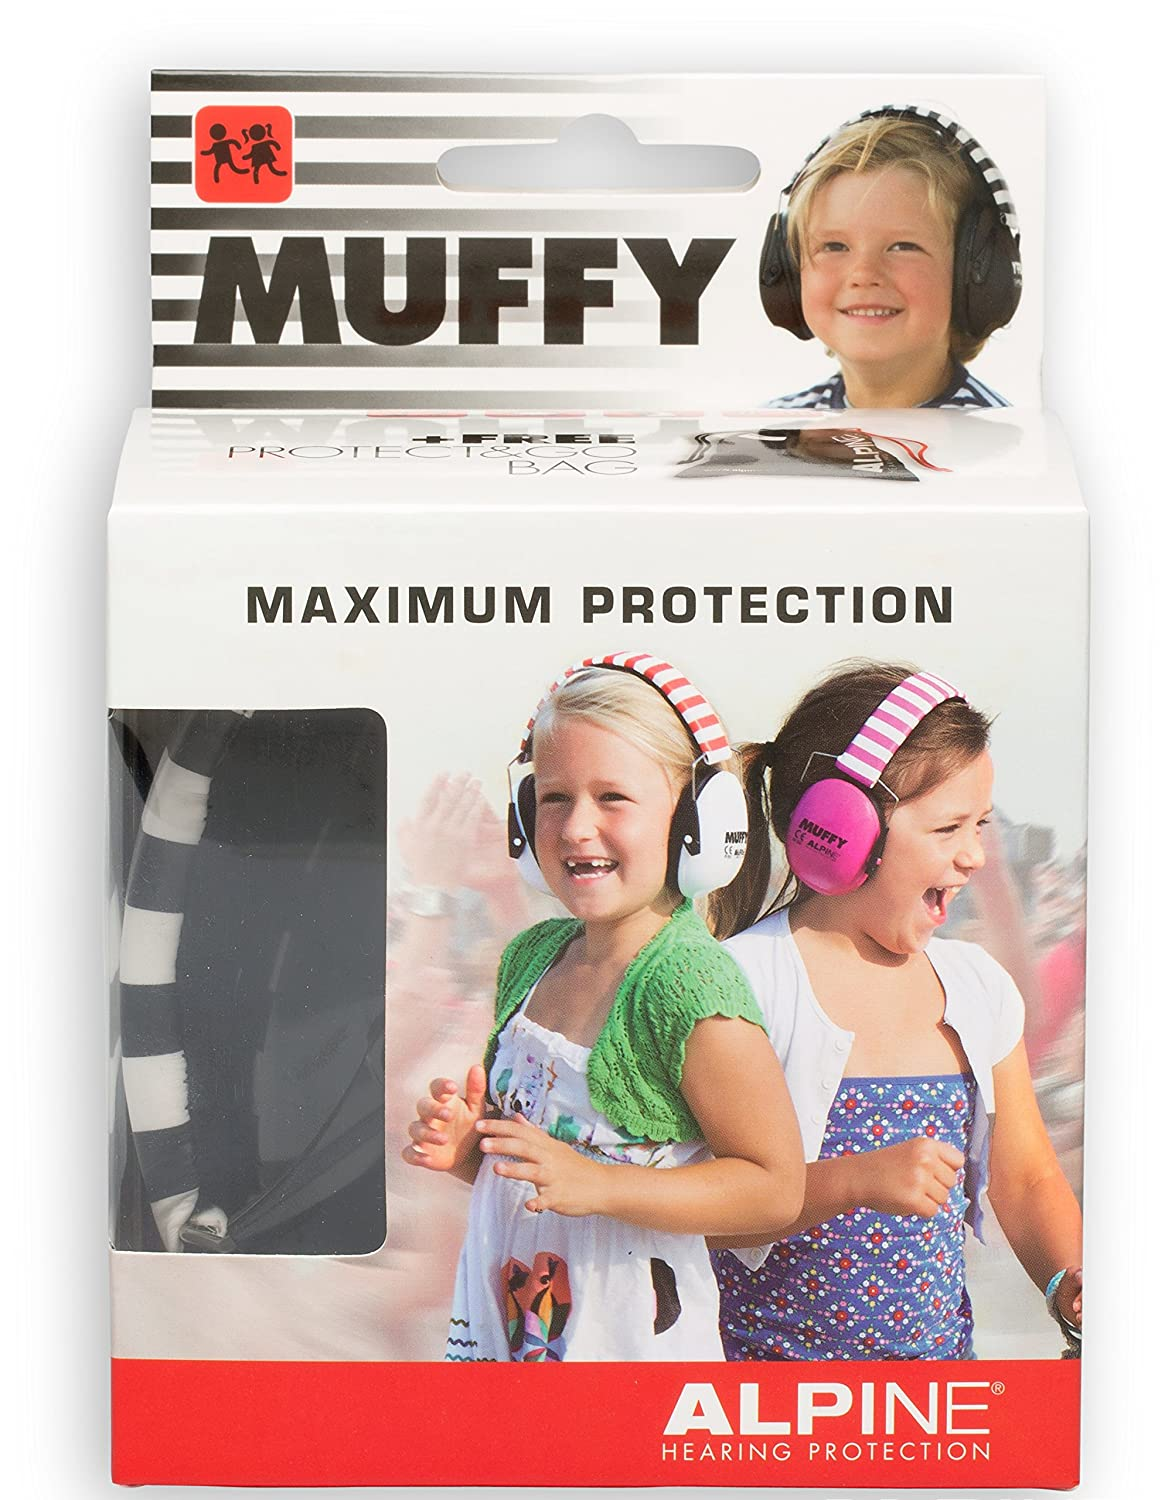 Alpine Muffy Smile Ear Muffs Yellow Smiley Face Ear Protectors for Kids